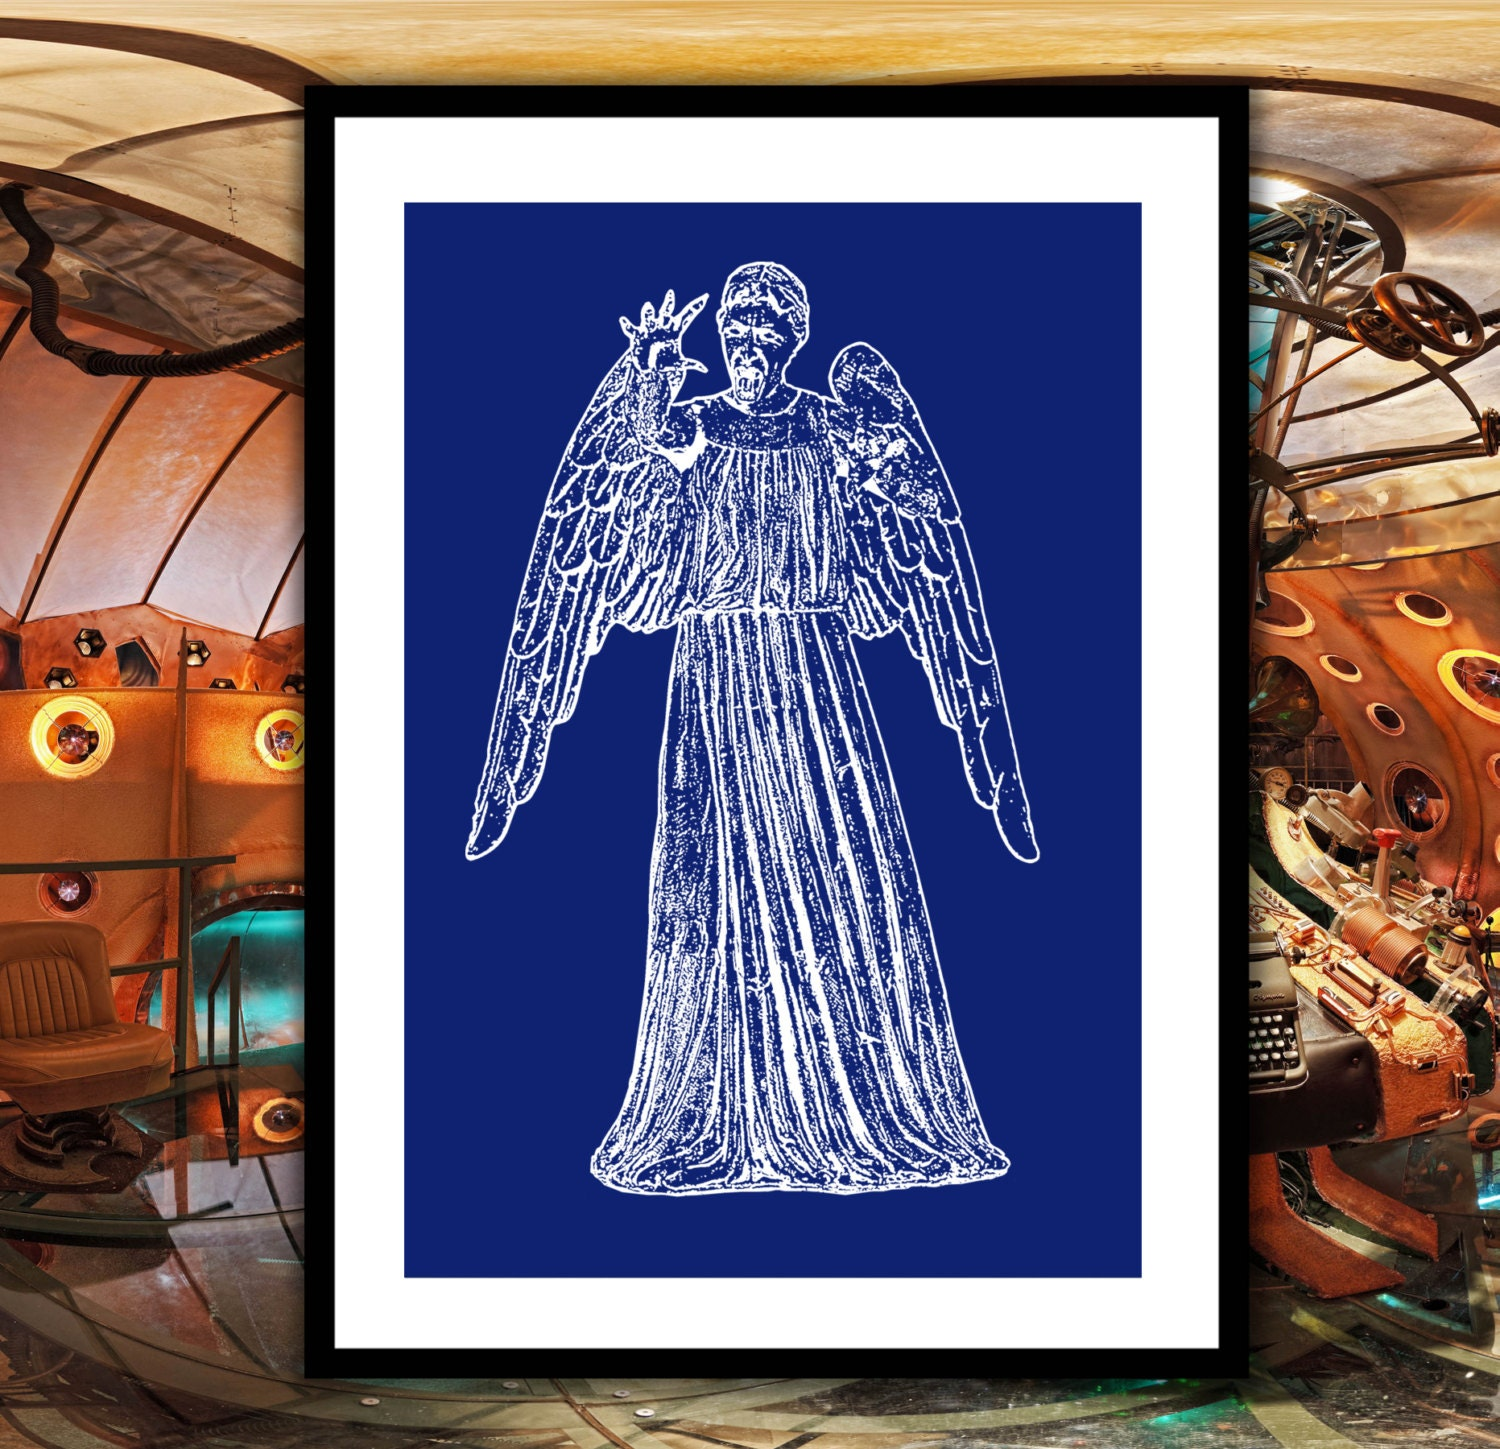 Doctor who weeping angel patent dr who weeping angel poster doctor who weeping angel patent dr who weeping angel poster weeping angel blueprint dalek print doctor who wall art doctor who decor malvernweather Gallery